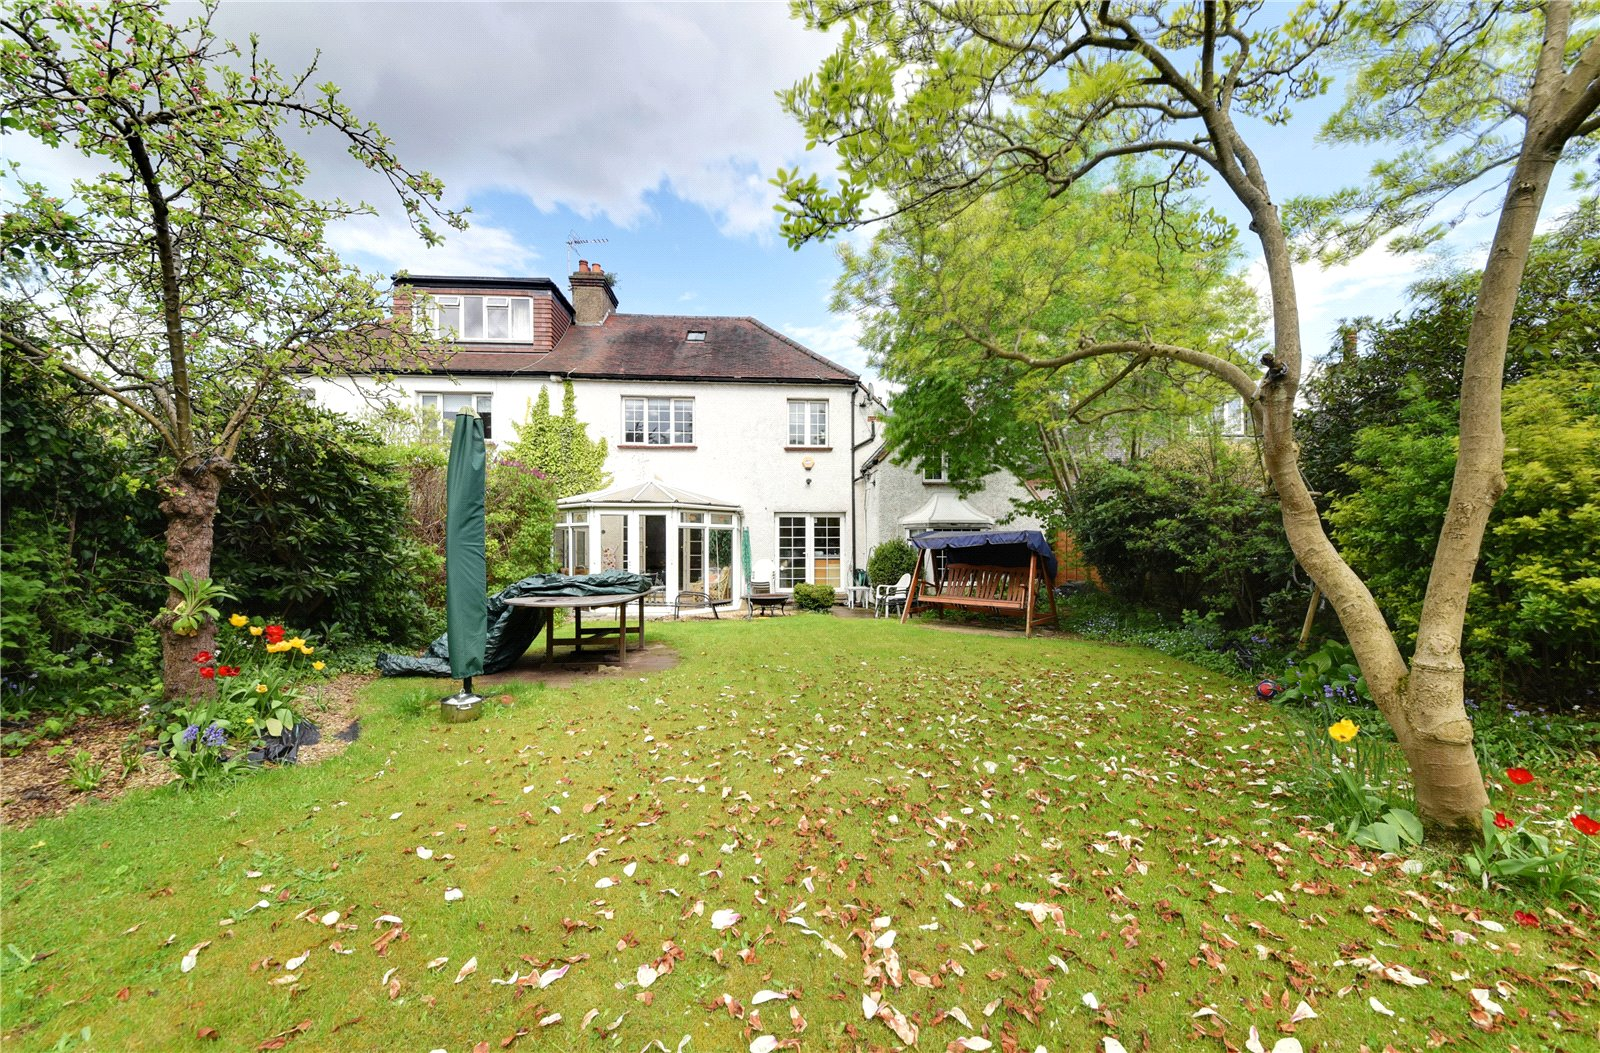 5 bed house for sale in Southgate, N14 4PX 4